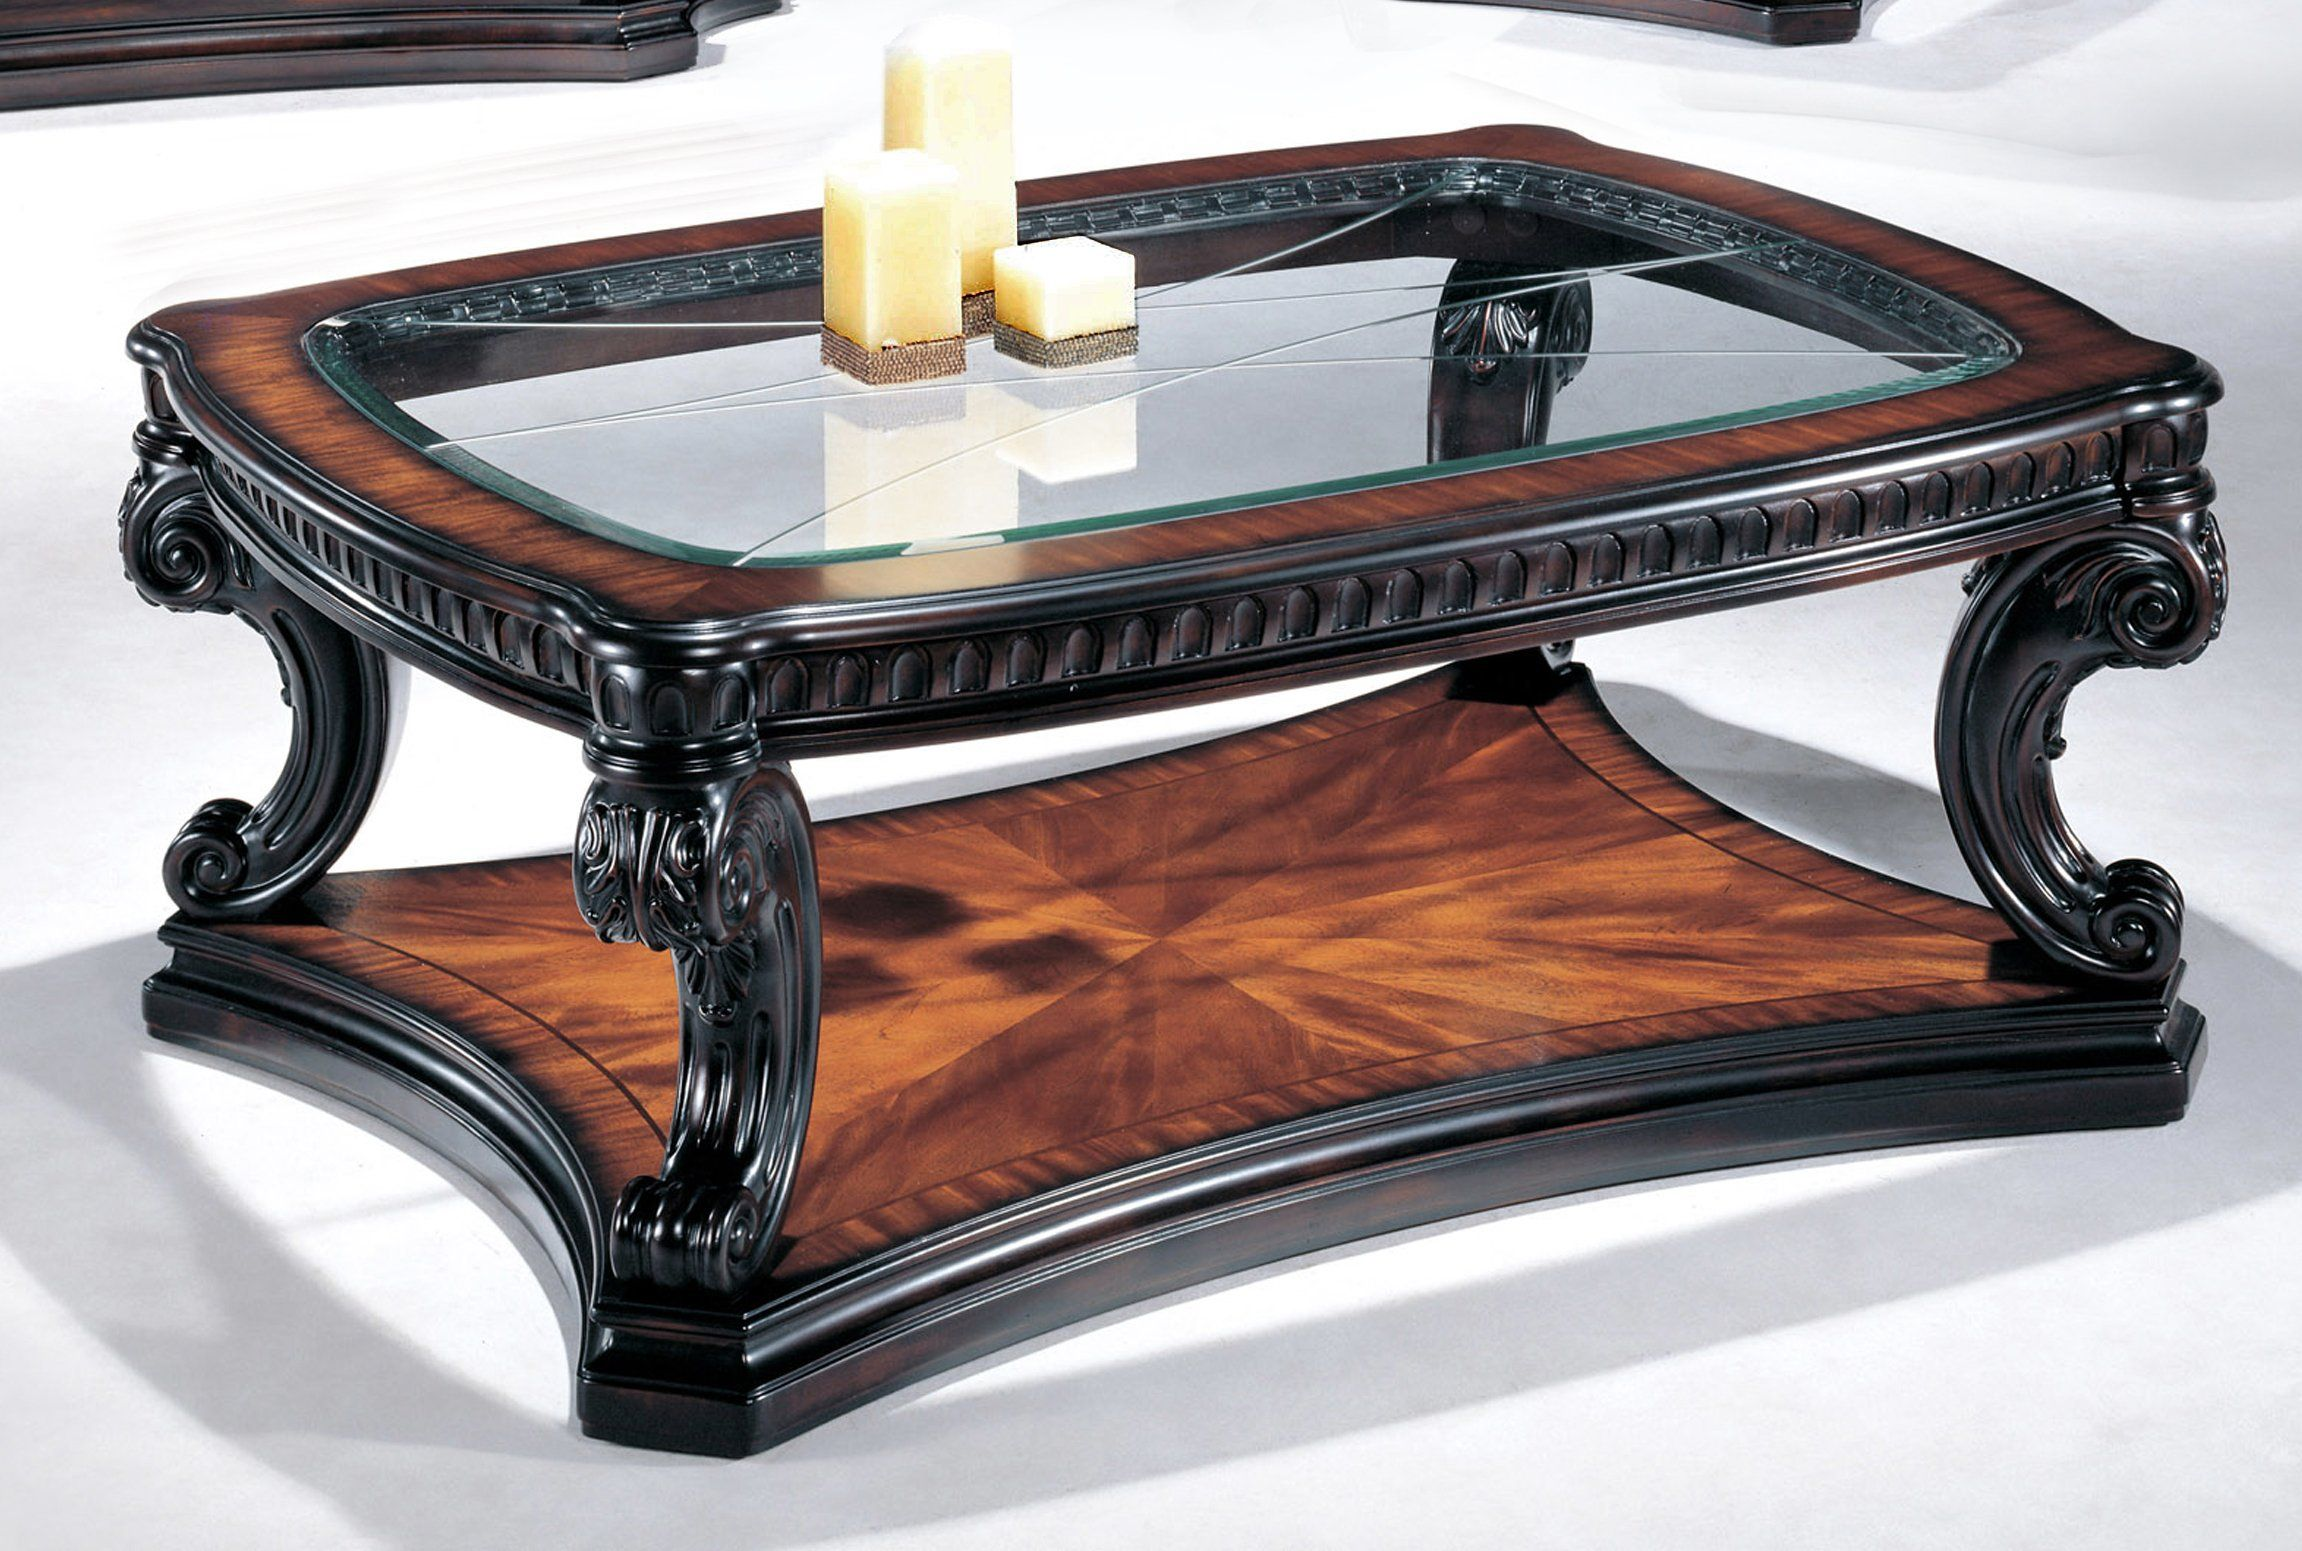 Pin By Rc Willey On Rasta Coffee Table Glass Top Coffee Table Royal Furniture [ 1551 x 2302 Pixel ]